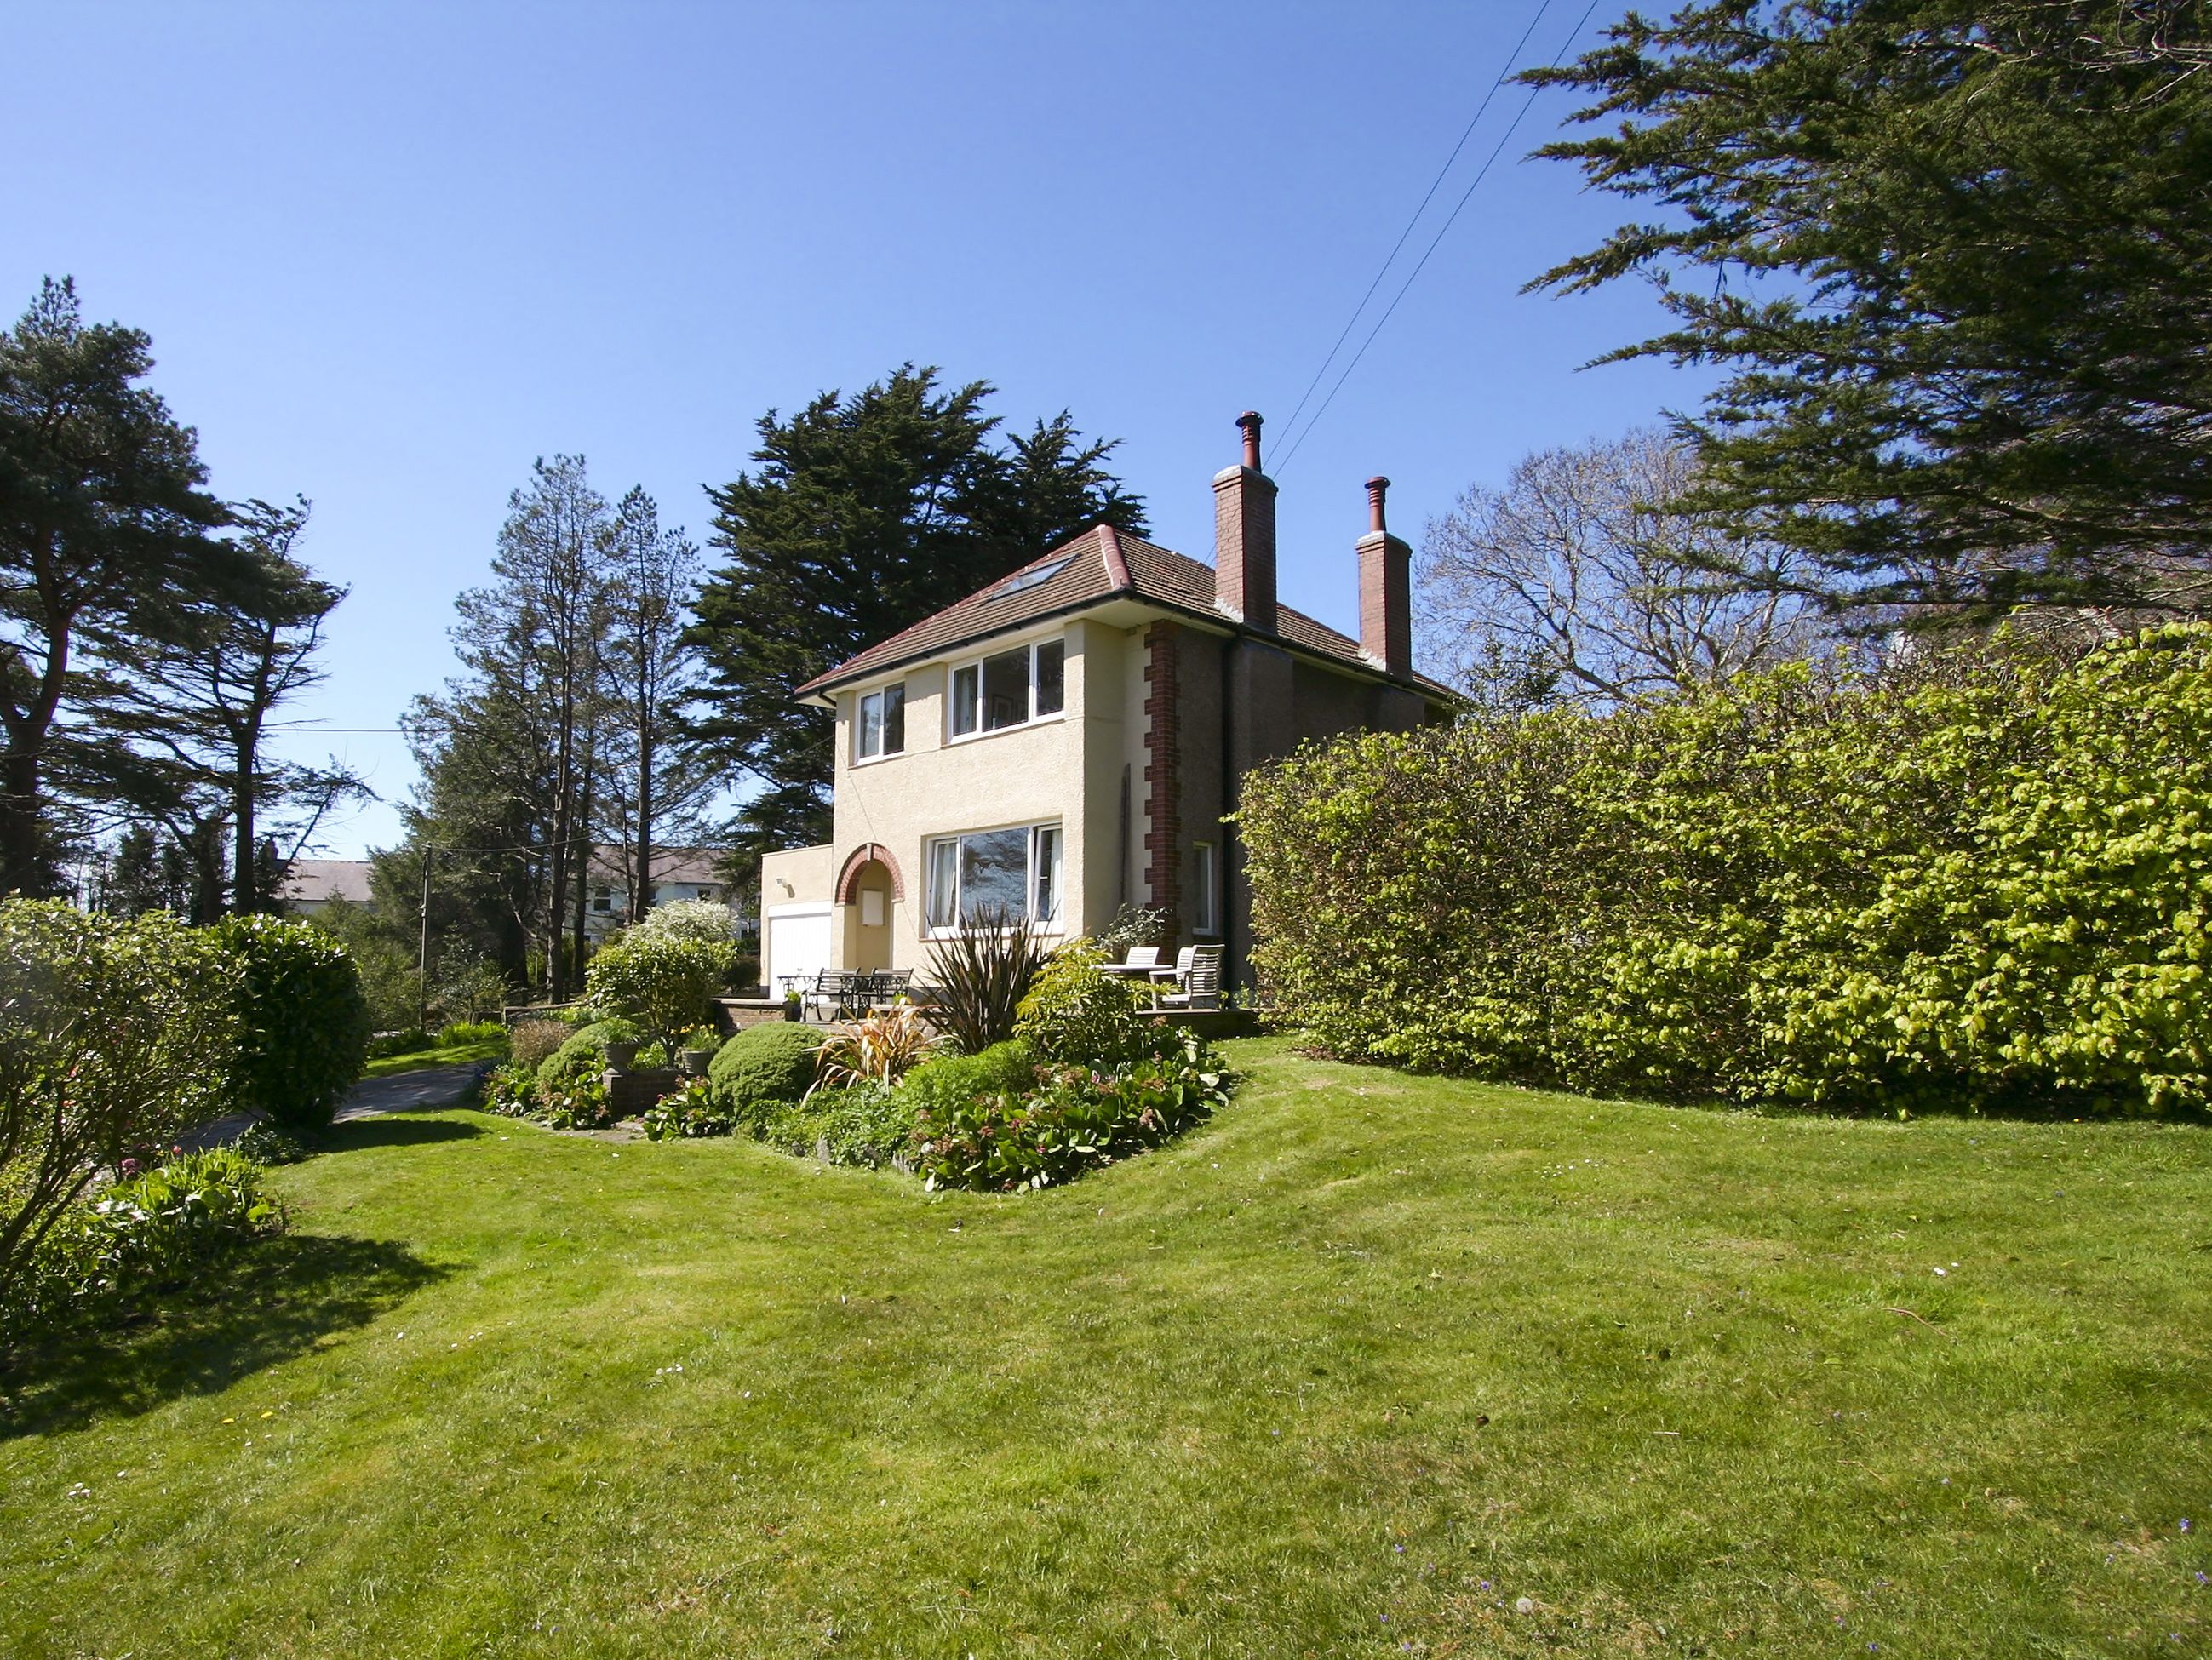 Precelly View Cottages Ranelagh Ref Uk6482 In Goodwick Near Fishguard Pembrokeshire Cottage House Styles Mansions